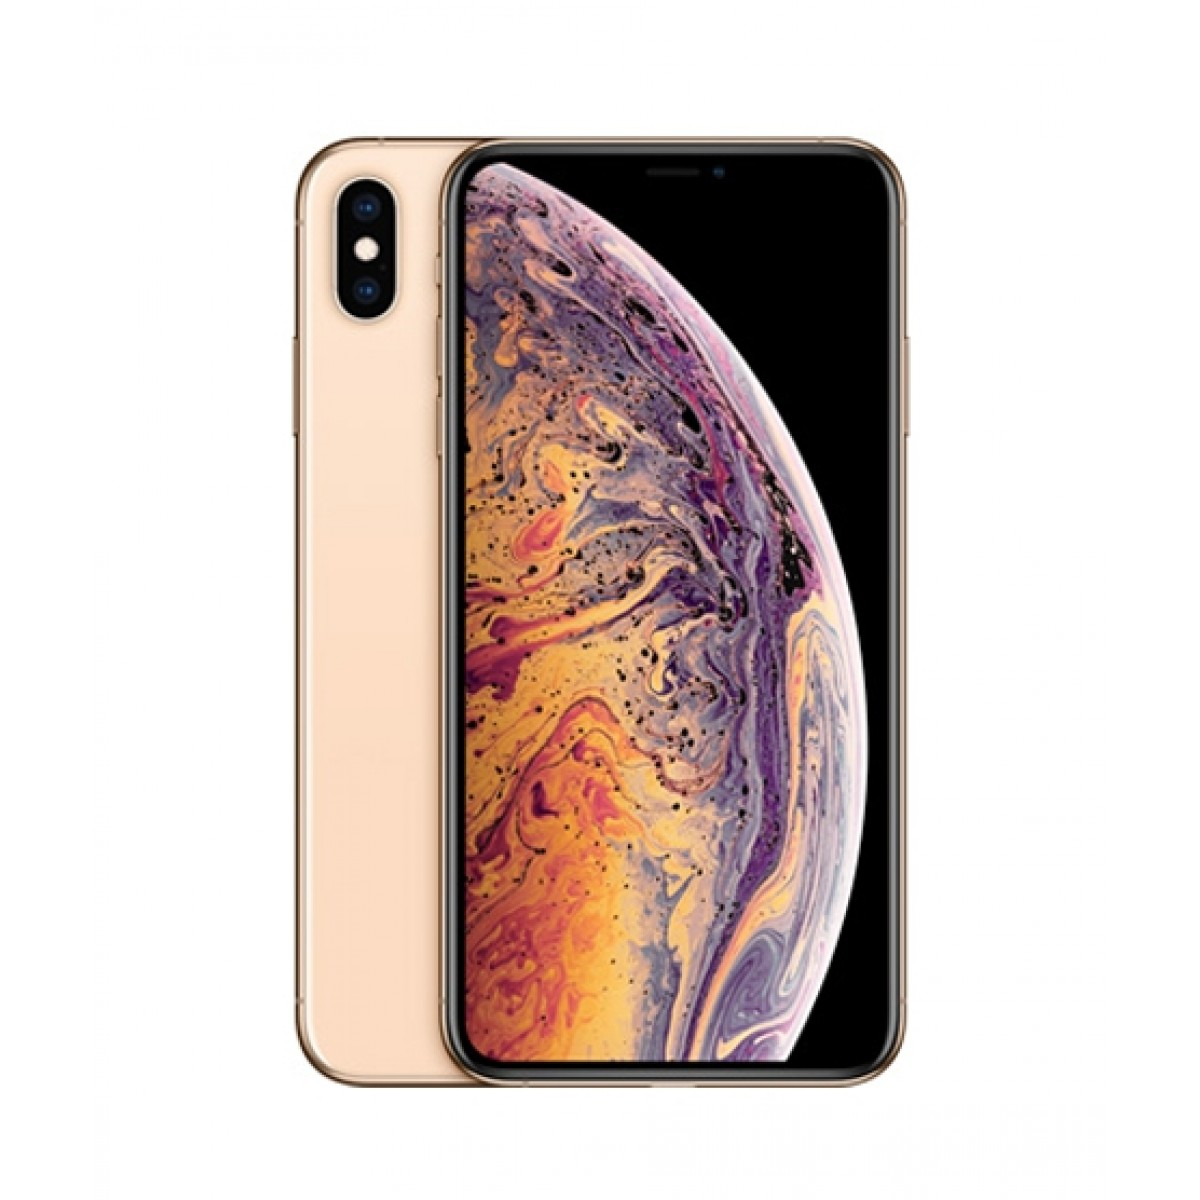 Apple iPhone XS 64GB Gold - Non PTA Compliant